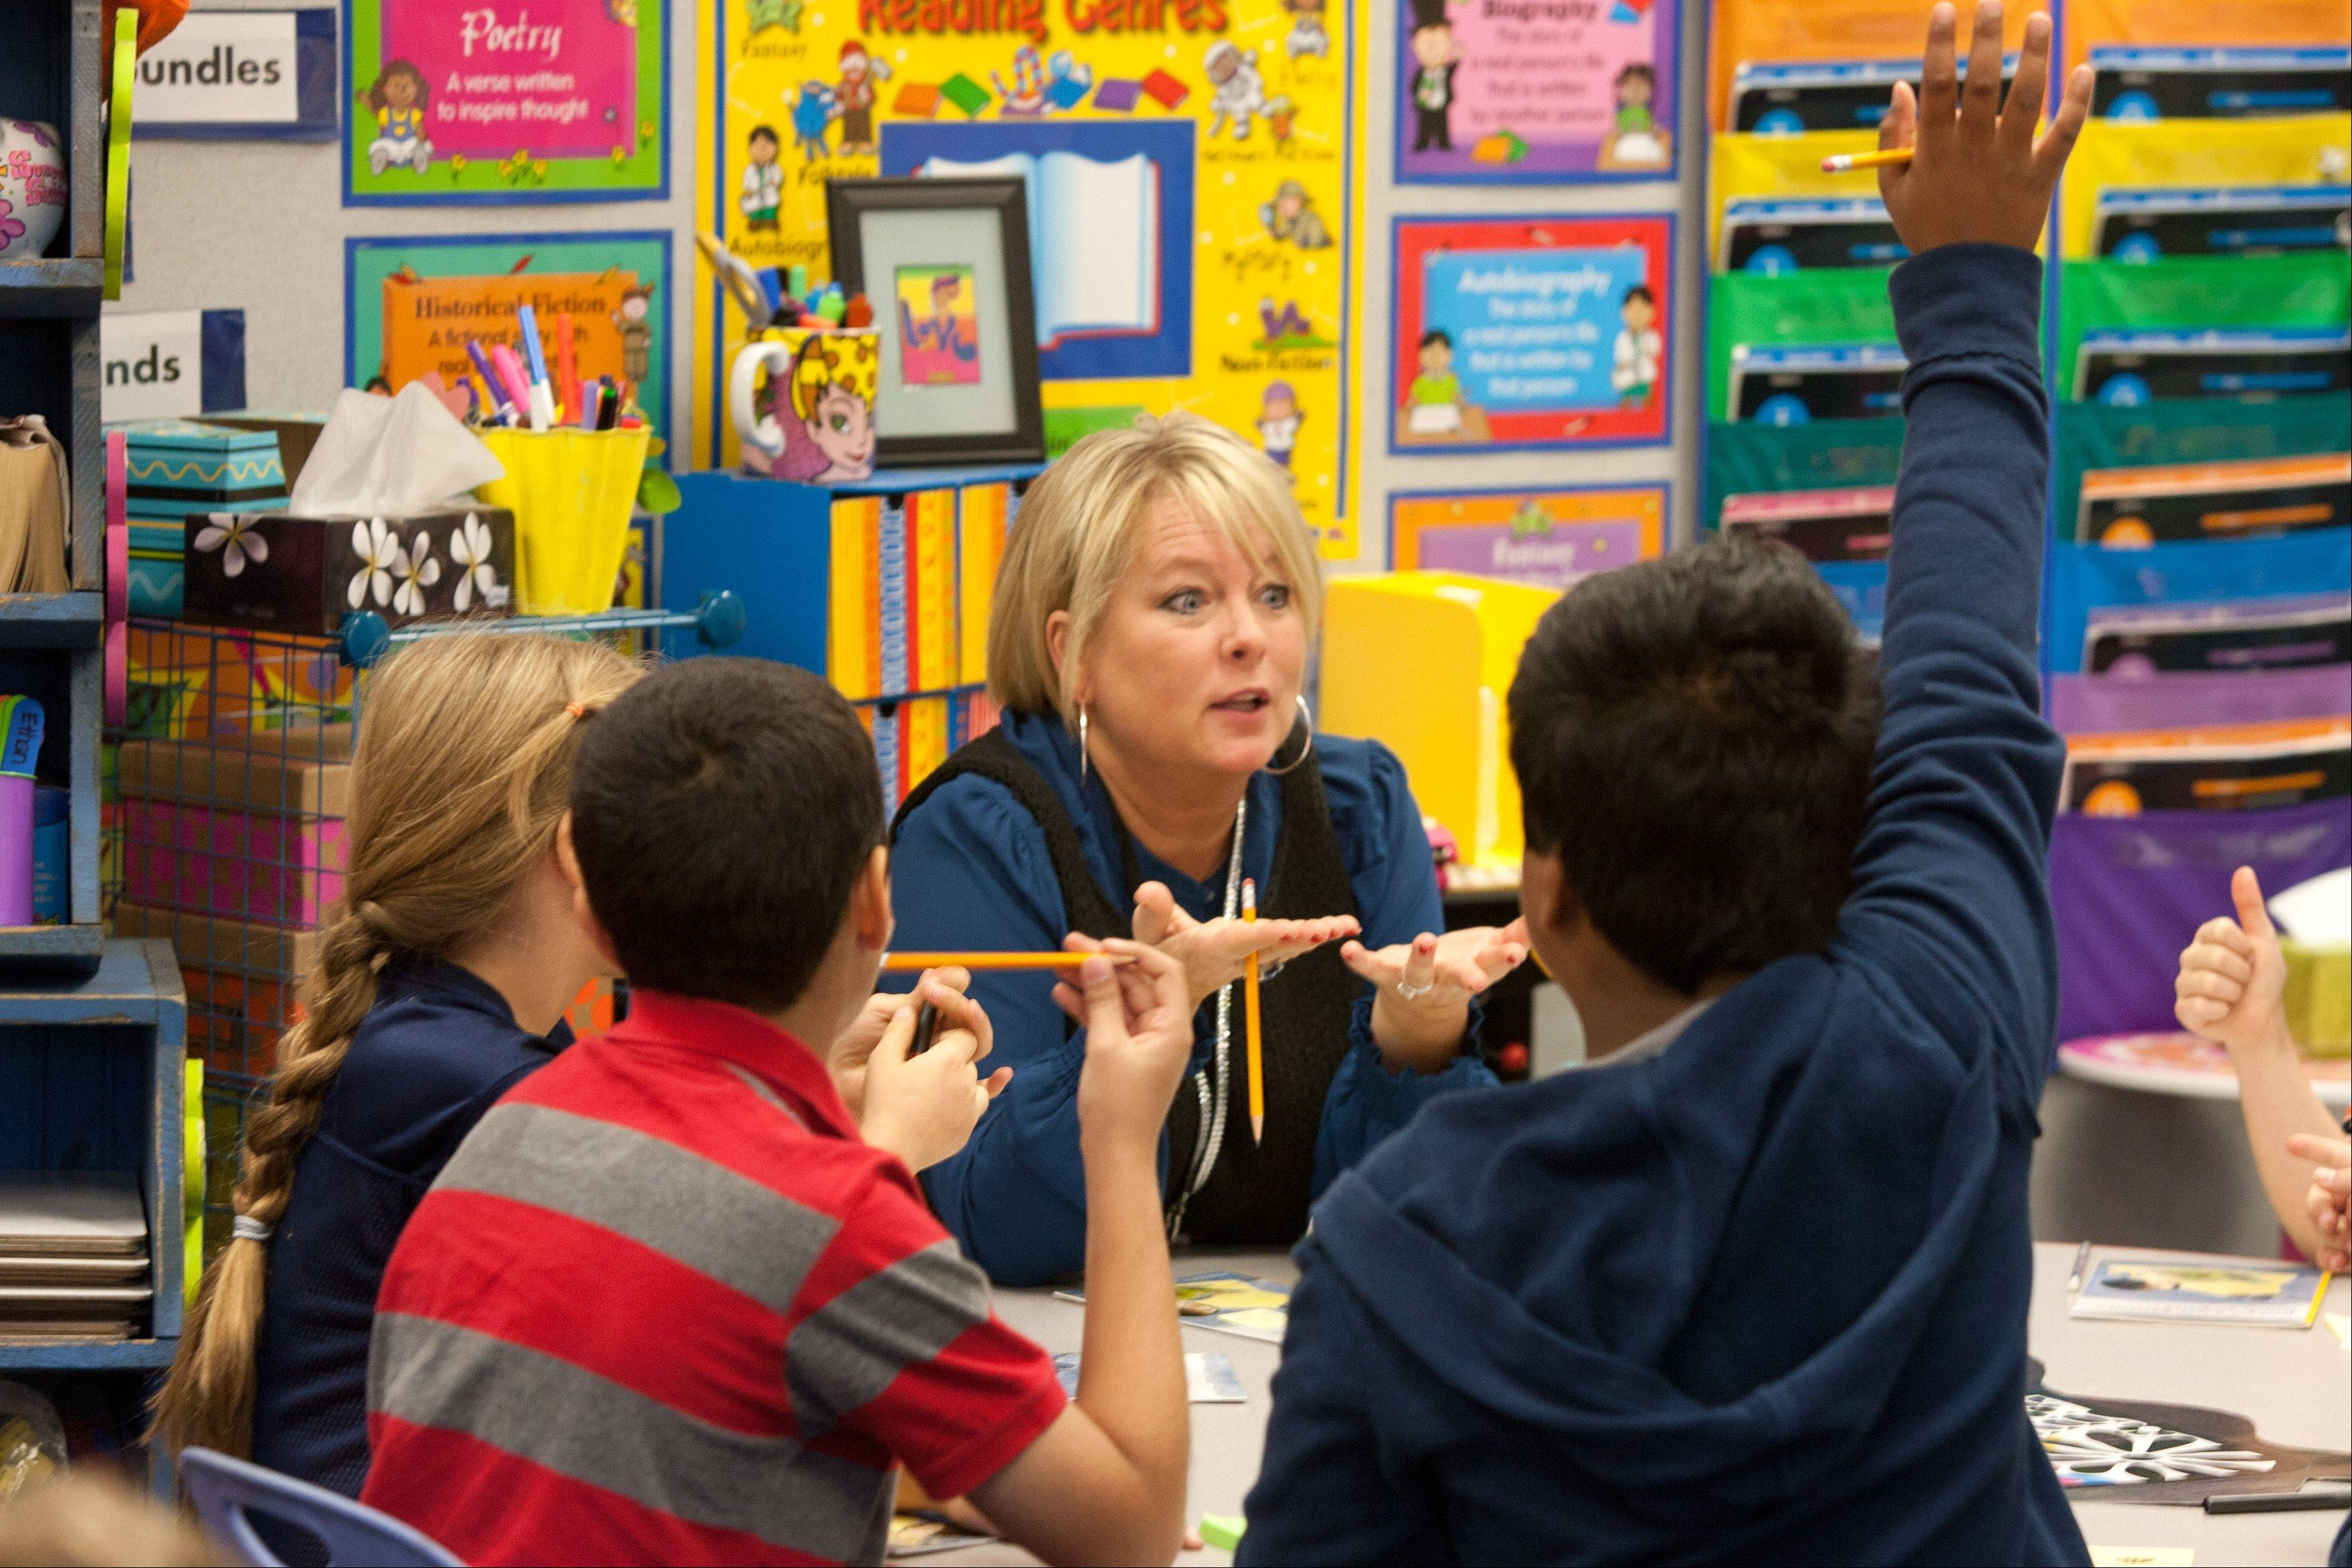 Daniel White/dwhite@dailyherald.comTeacher Elizabeth Sompolski works with students at Brook Forest Elementary School in Oak Brook. State Report Cards assessing progress in our schools was released Thursday.